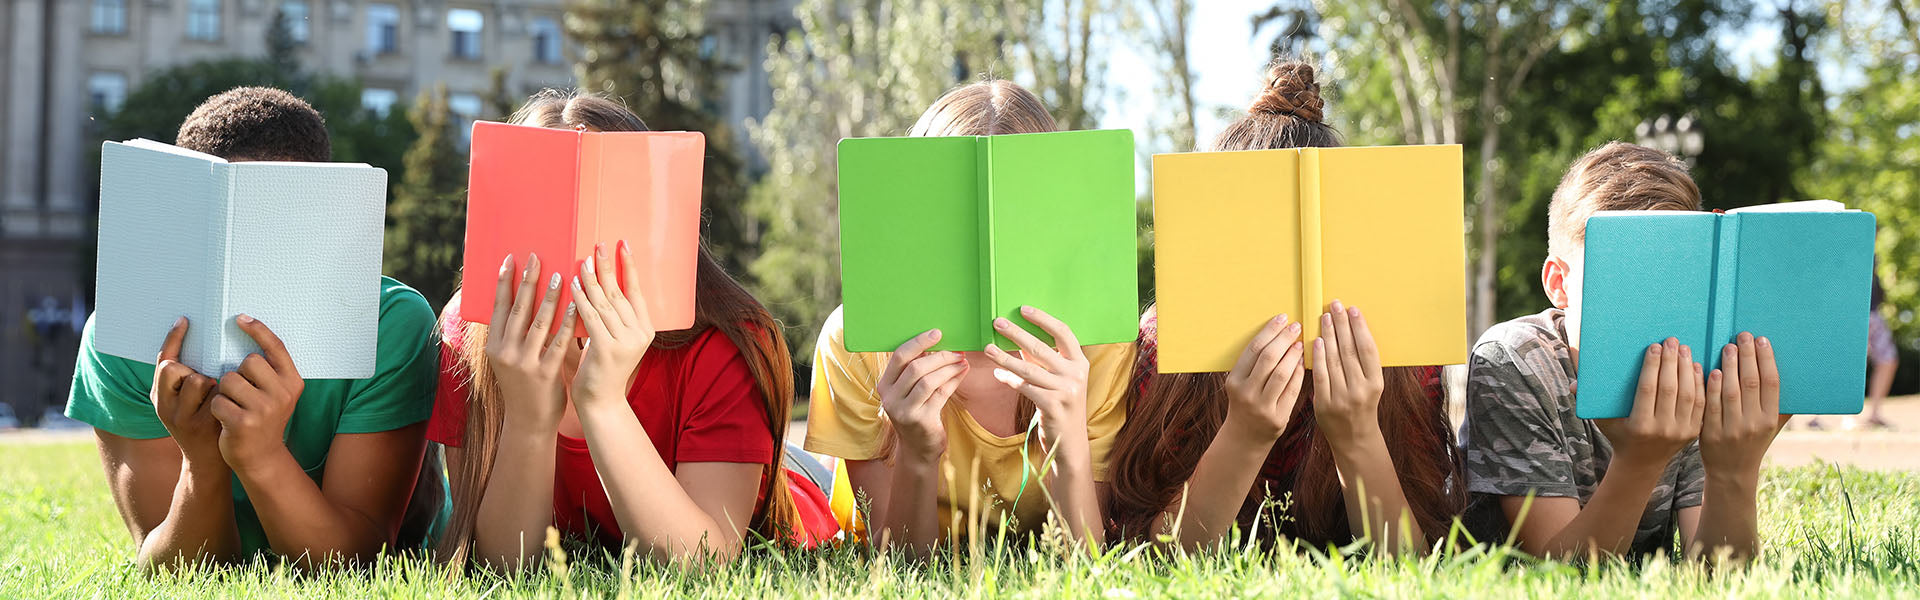 Kids reading in the grass during the summer